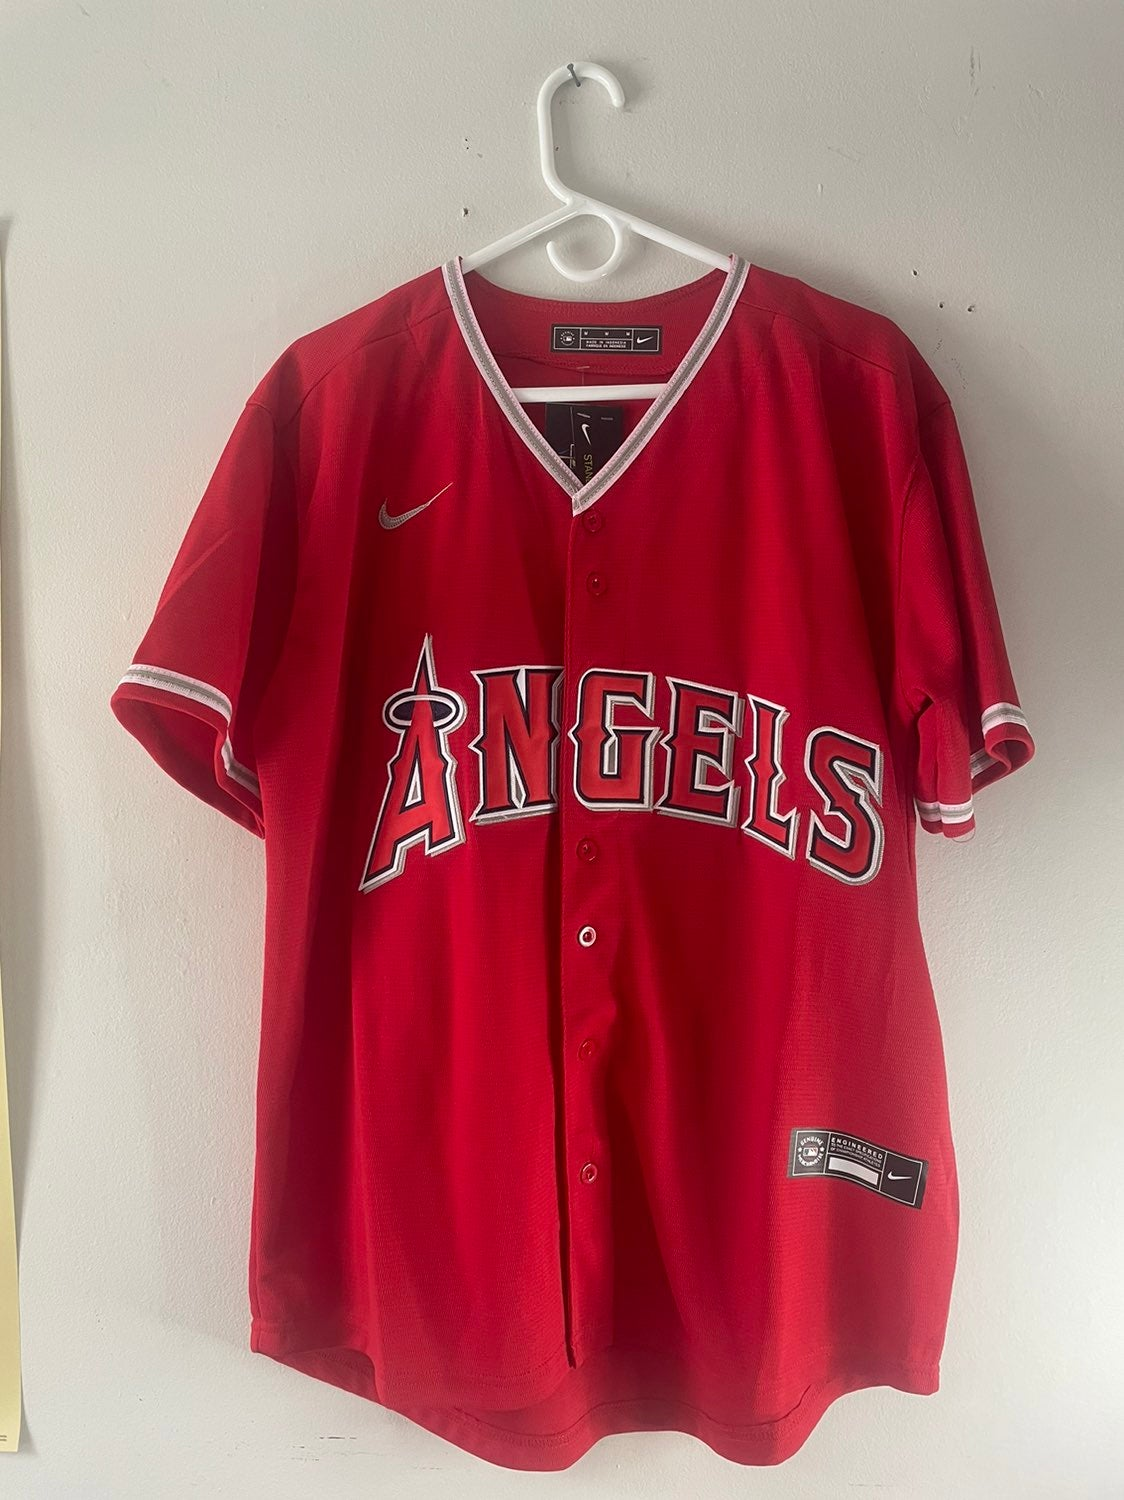 Mike Trout Large Jersey